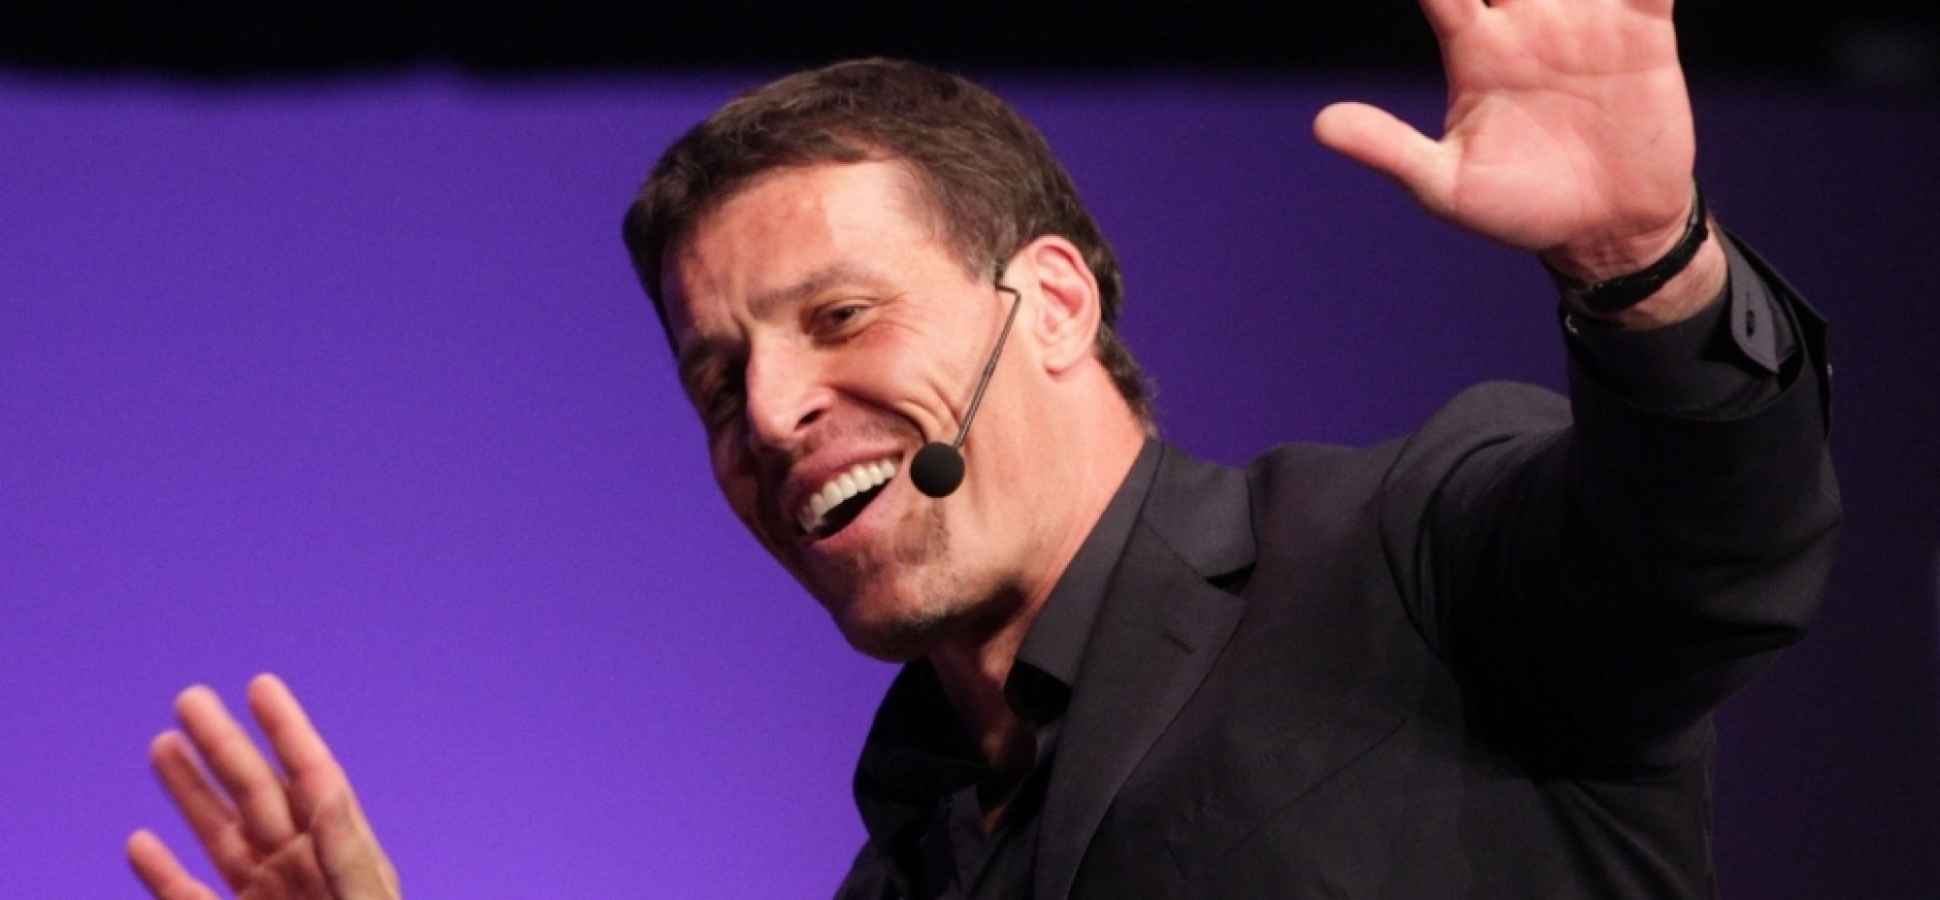 Tony Robbins on Acing the Age-Old Question 'What Does Your Company Do?'